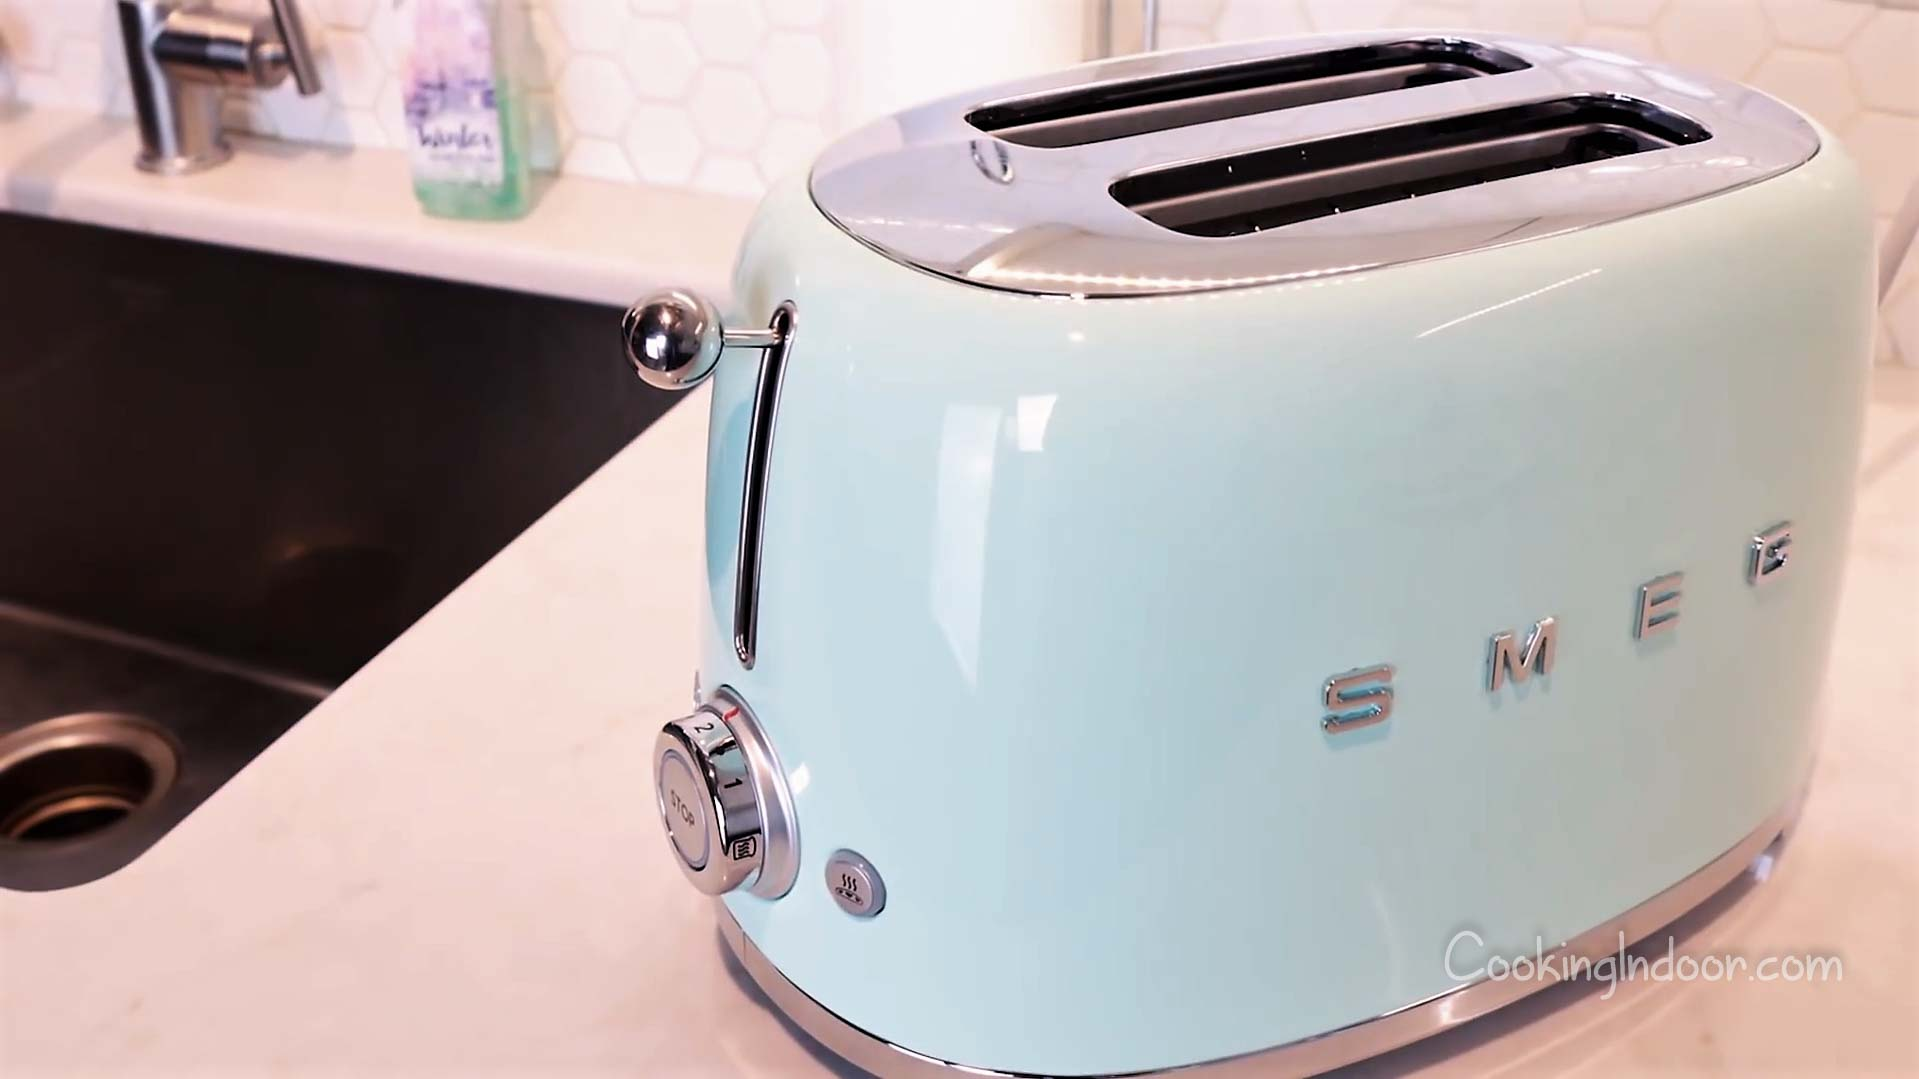 Most reliable toaster